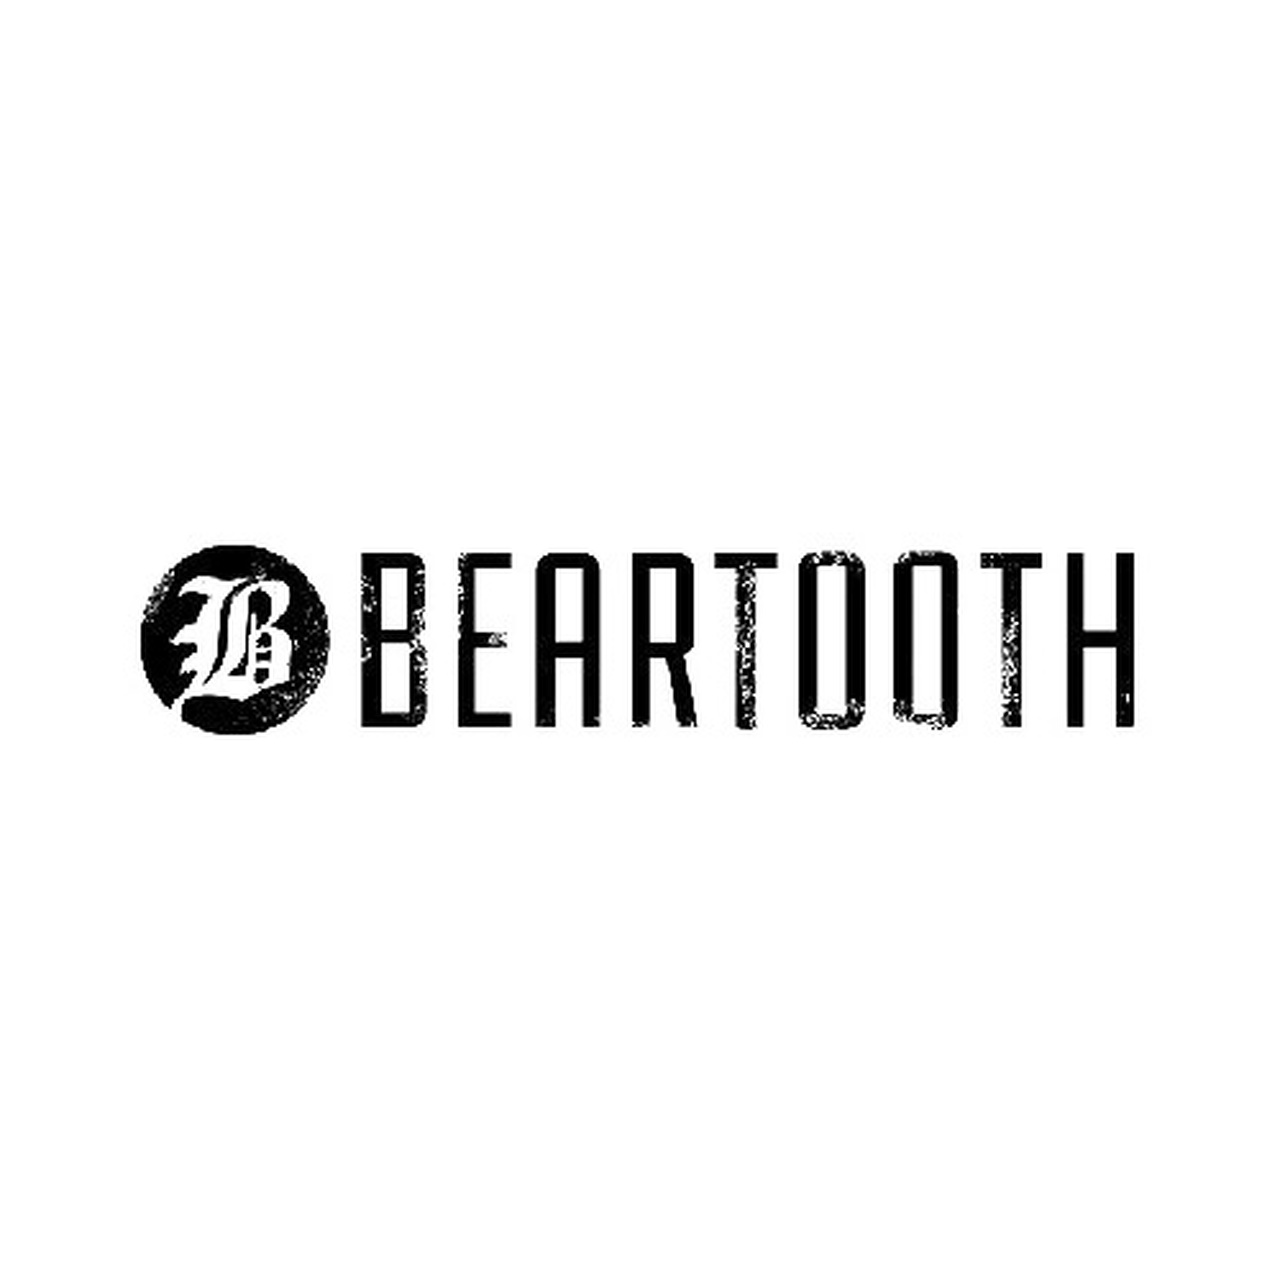 Beartooth.